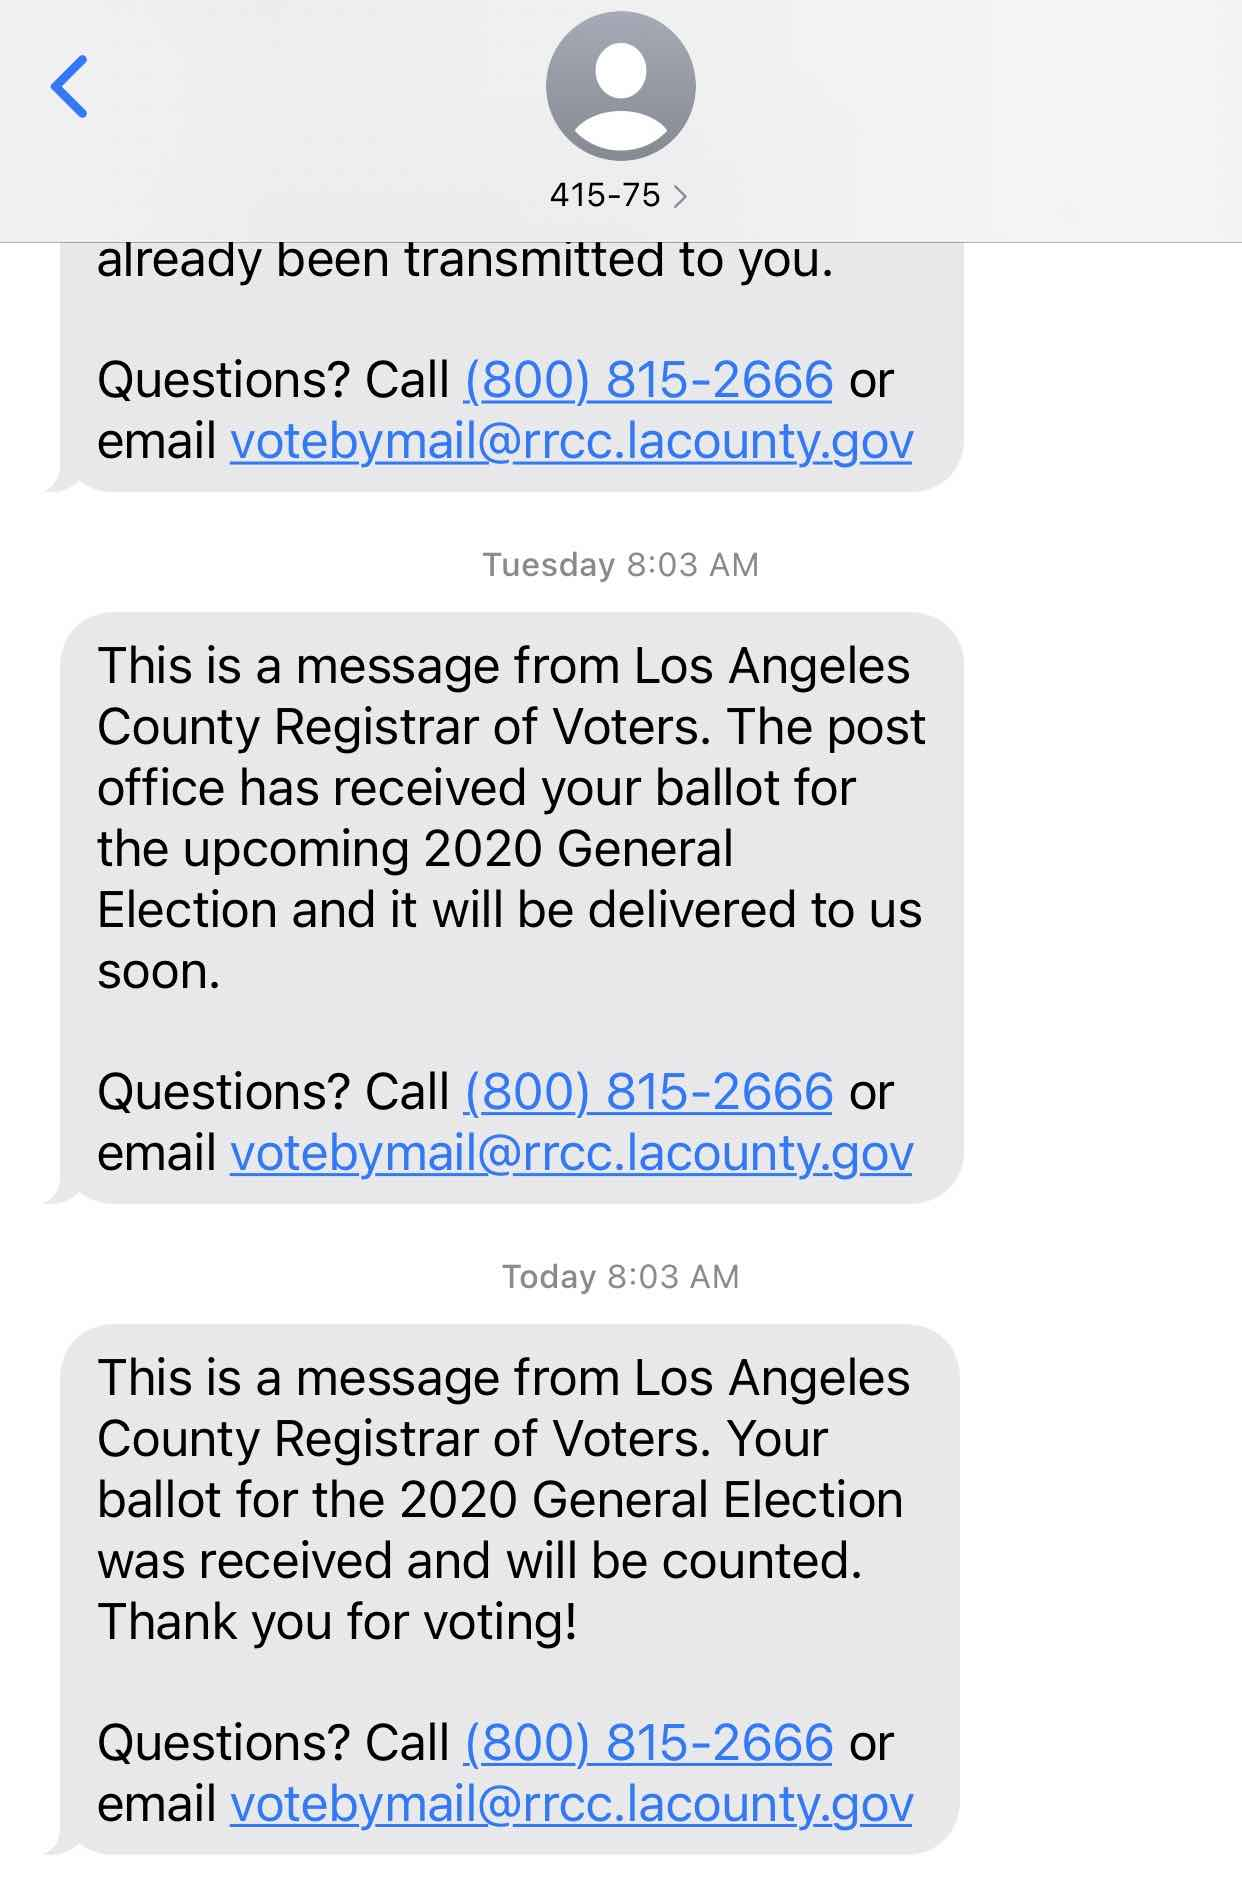 A series of text messages confirming receipt and processing of this voter's mail-in-ballot